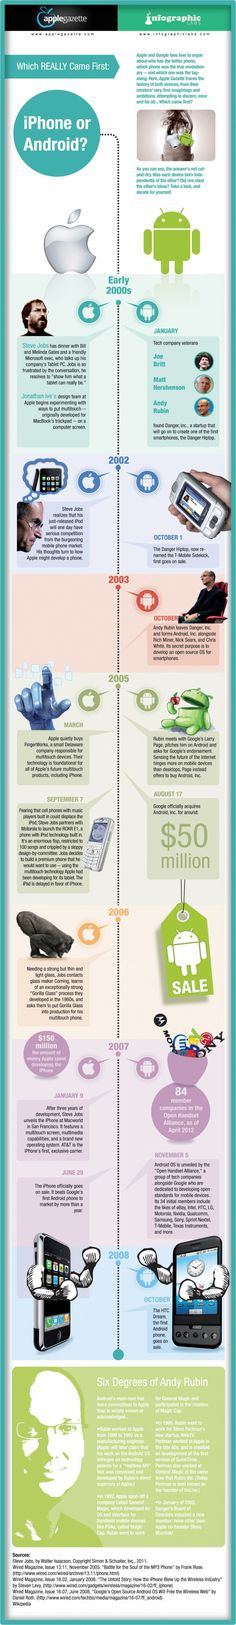 Which #Mobile Platform you Prefer : #iPhone or #Android? #infographic #google